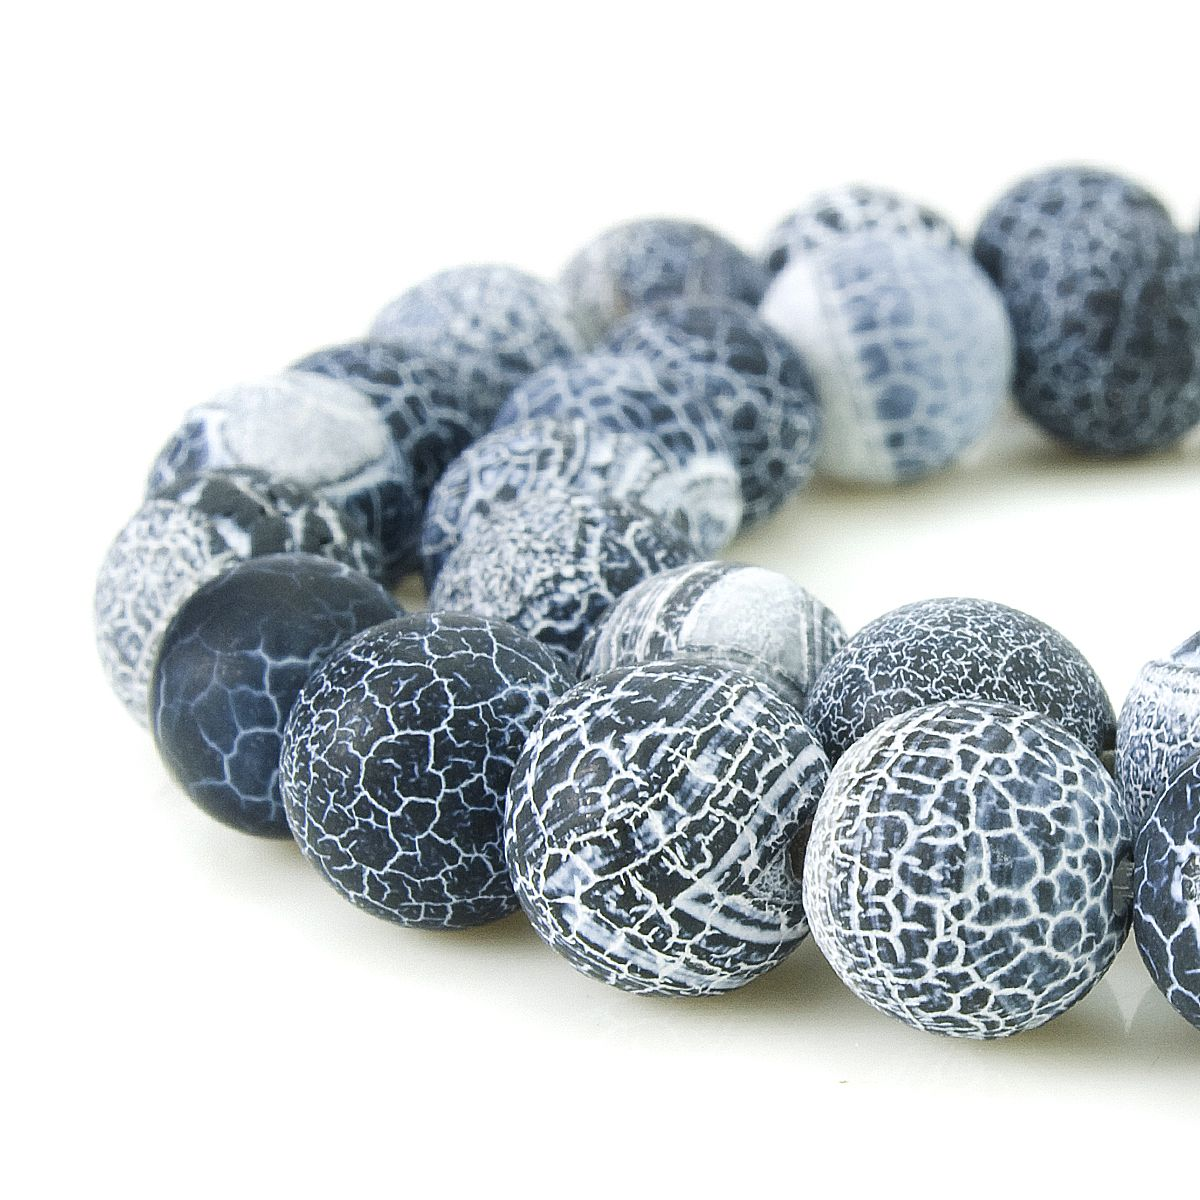 Black Frosted Agate beads